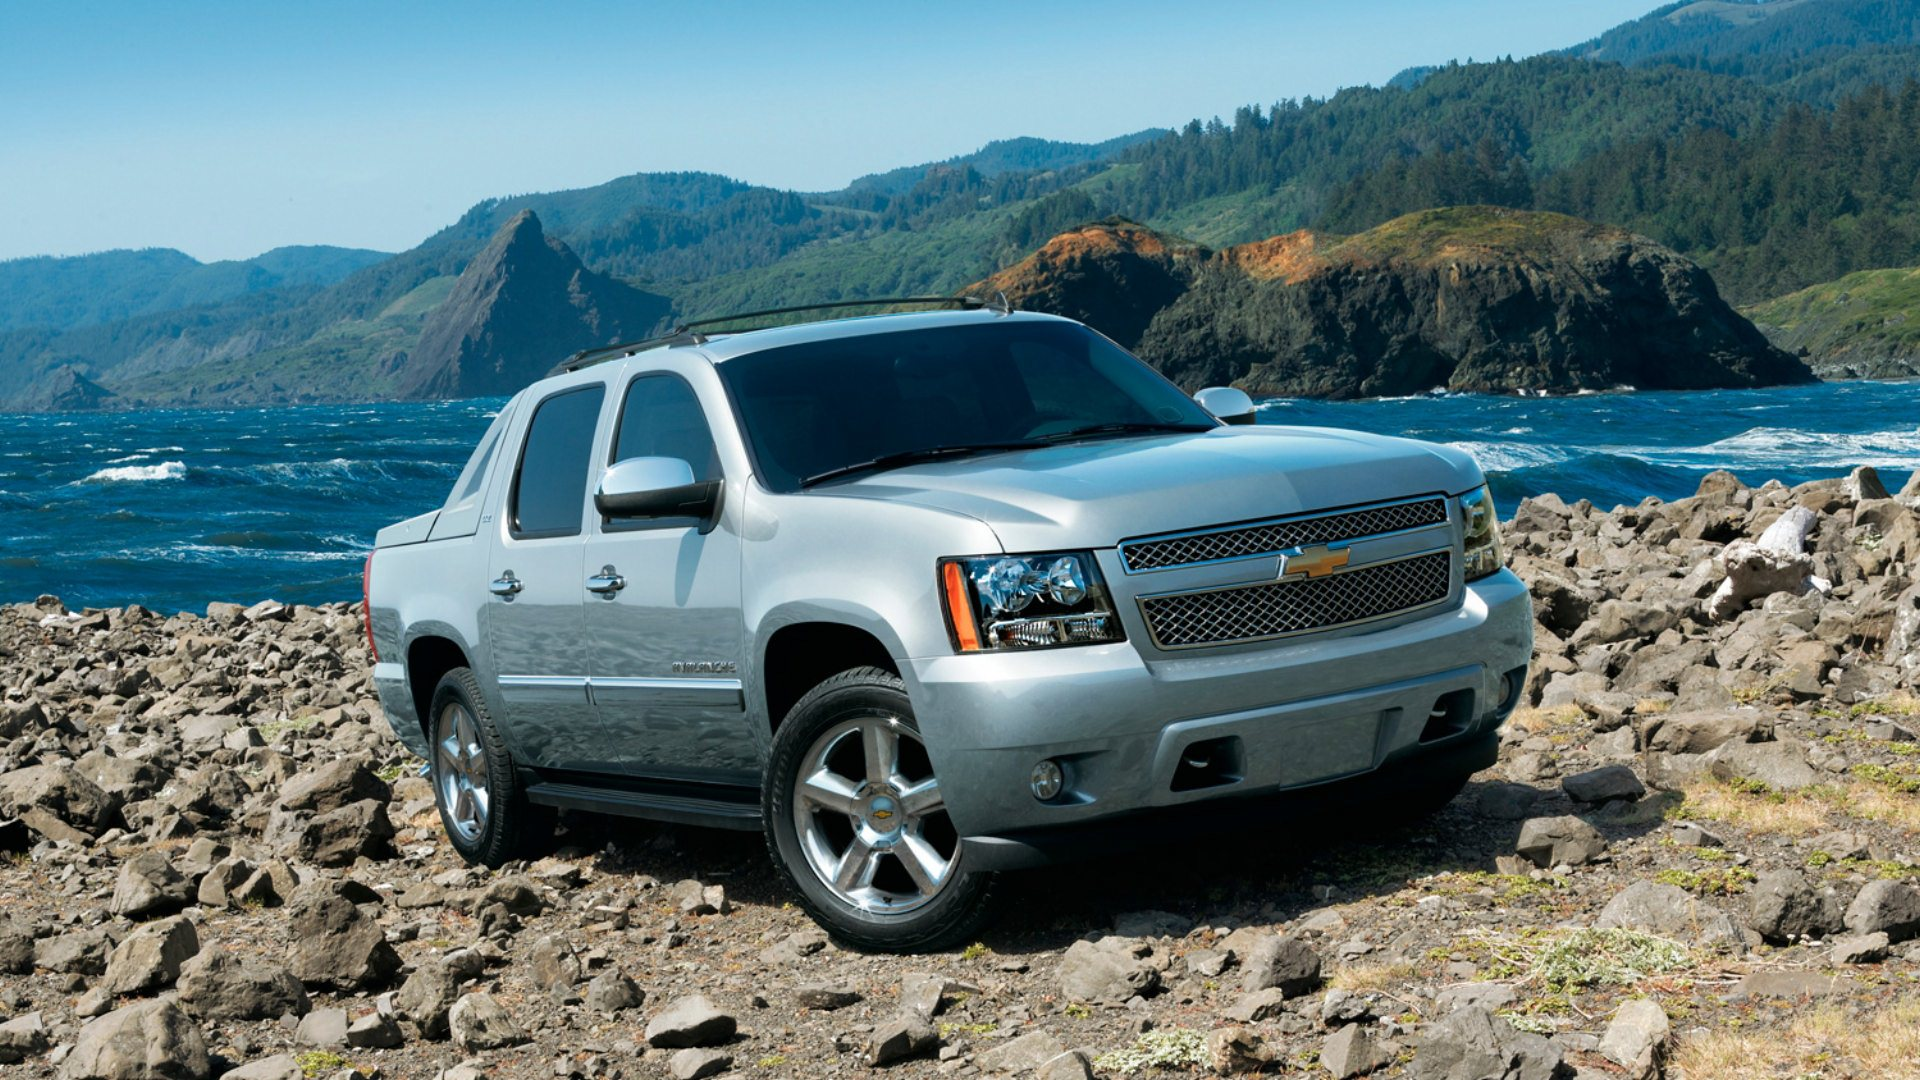 chevrolet avalanche wallpaper background